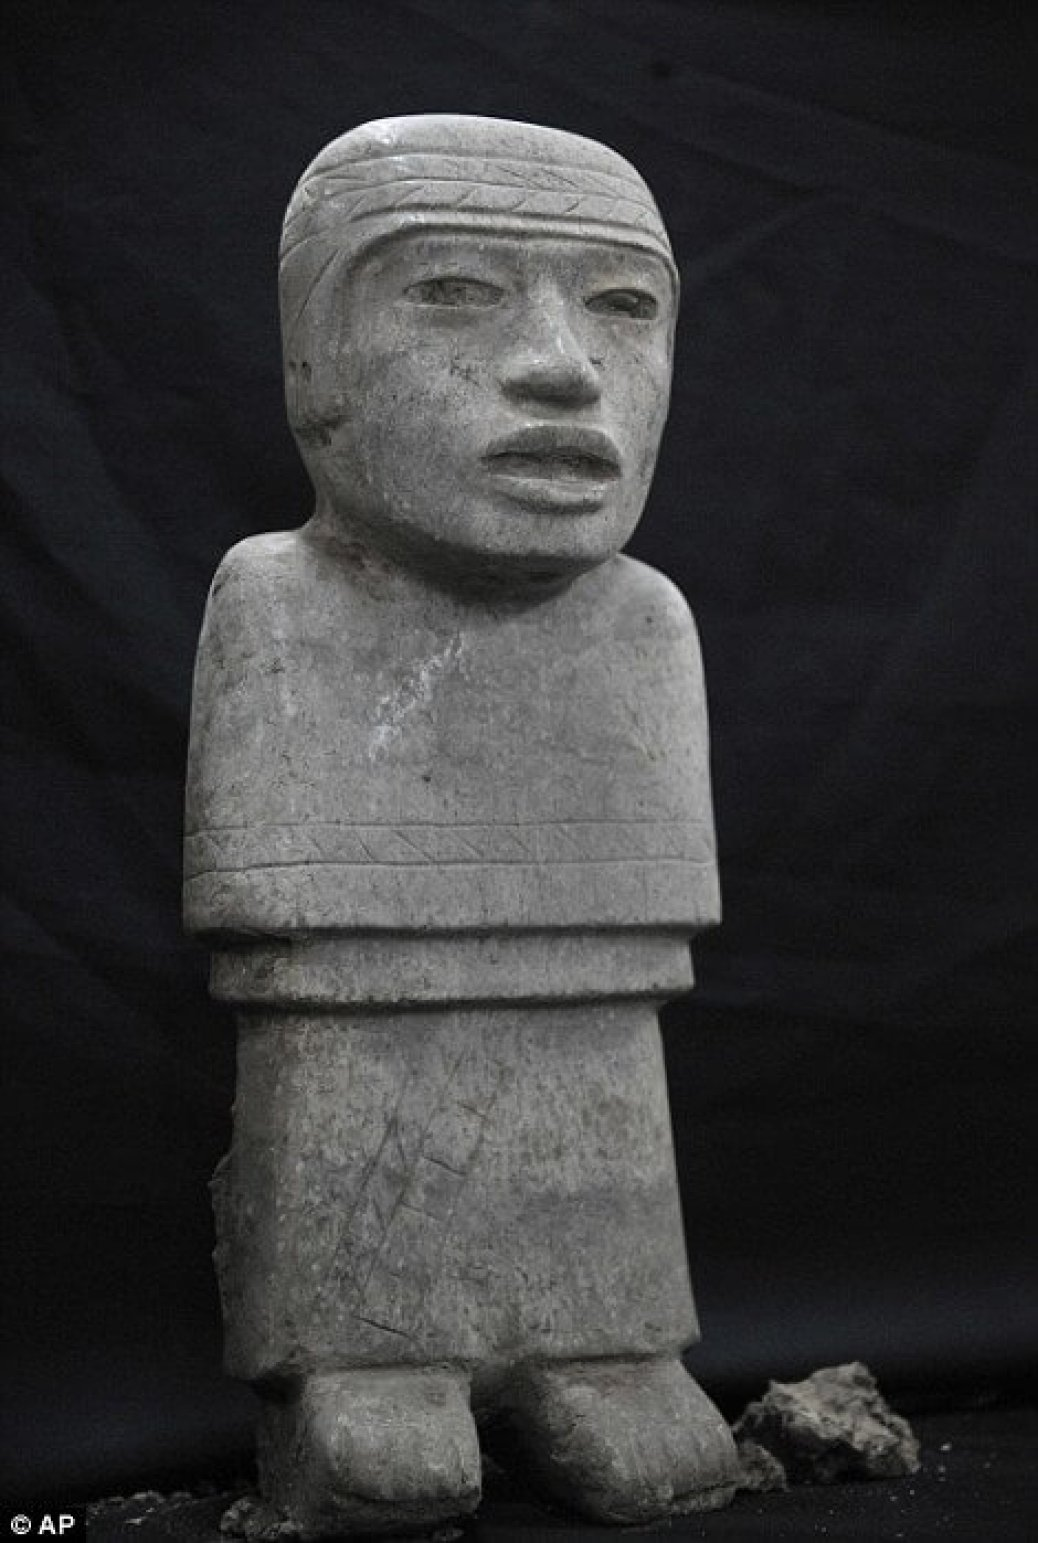 "Handout picture released by the National Institute of Anthropology and History (INAH in Spanish) showing a stone sculpture found at the Temple of the Feathered Serpent (Serpiente Emplumada) at the Teotihuacan complex in Mexico City, taken on October 25, 2014. Archaeologist Sergio Gomez announced in a press conference in Mexico City on October 29, 2014 that new discoveries were made recently at the temple. The discovered offering is located at 103 metres from the entrance of the temple and contains thousands of items including 4 stone sculptures and jade ornaments. AFP PHOTO/INAH --- RESTRICTED TO EDITORIAL USE - MANDATORY CREDIT ""AFP PHOTO /INAH"" - NO MARKETING NO ADVERTISING CAMPAIGNS - DISTRIBUTED AS A SERVICE TO CLIENTS--/AFP/Getty Images"